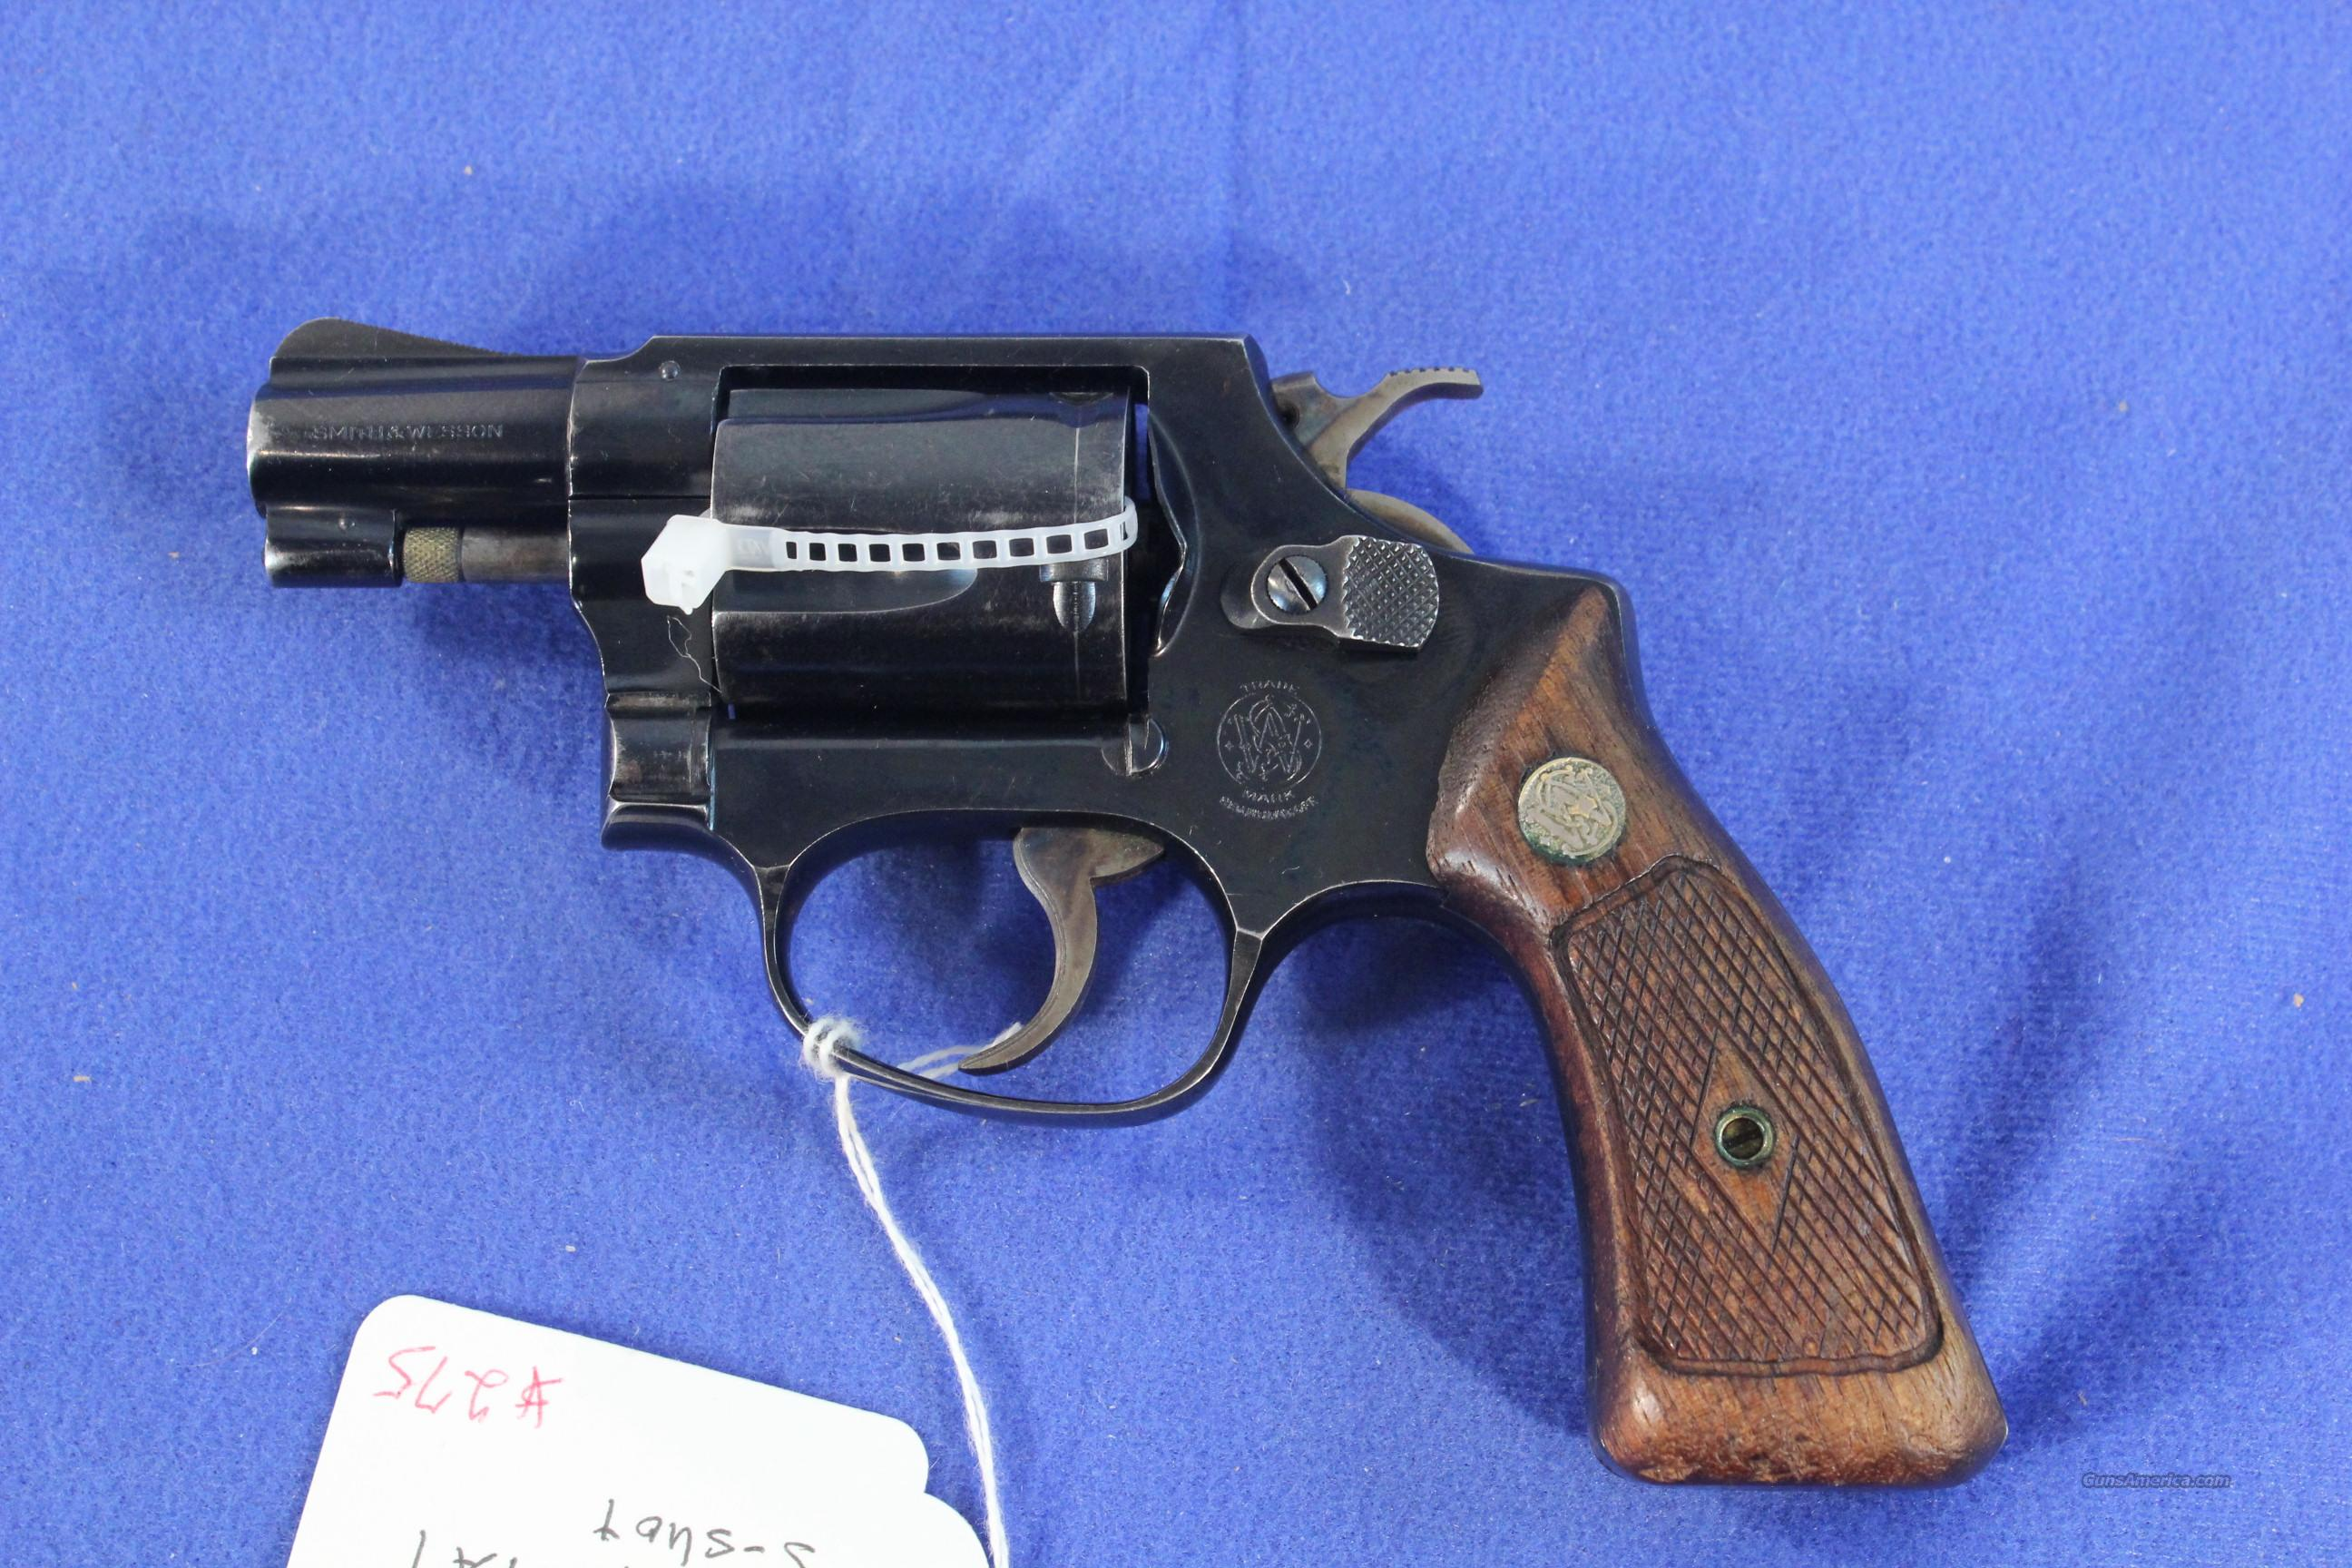 Smith & Wesson Model 36 .38 Special  Guns > Pistols > Smith & Wesson Revolvers > Pocket Pistols